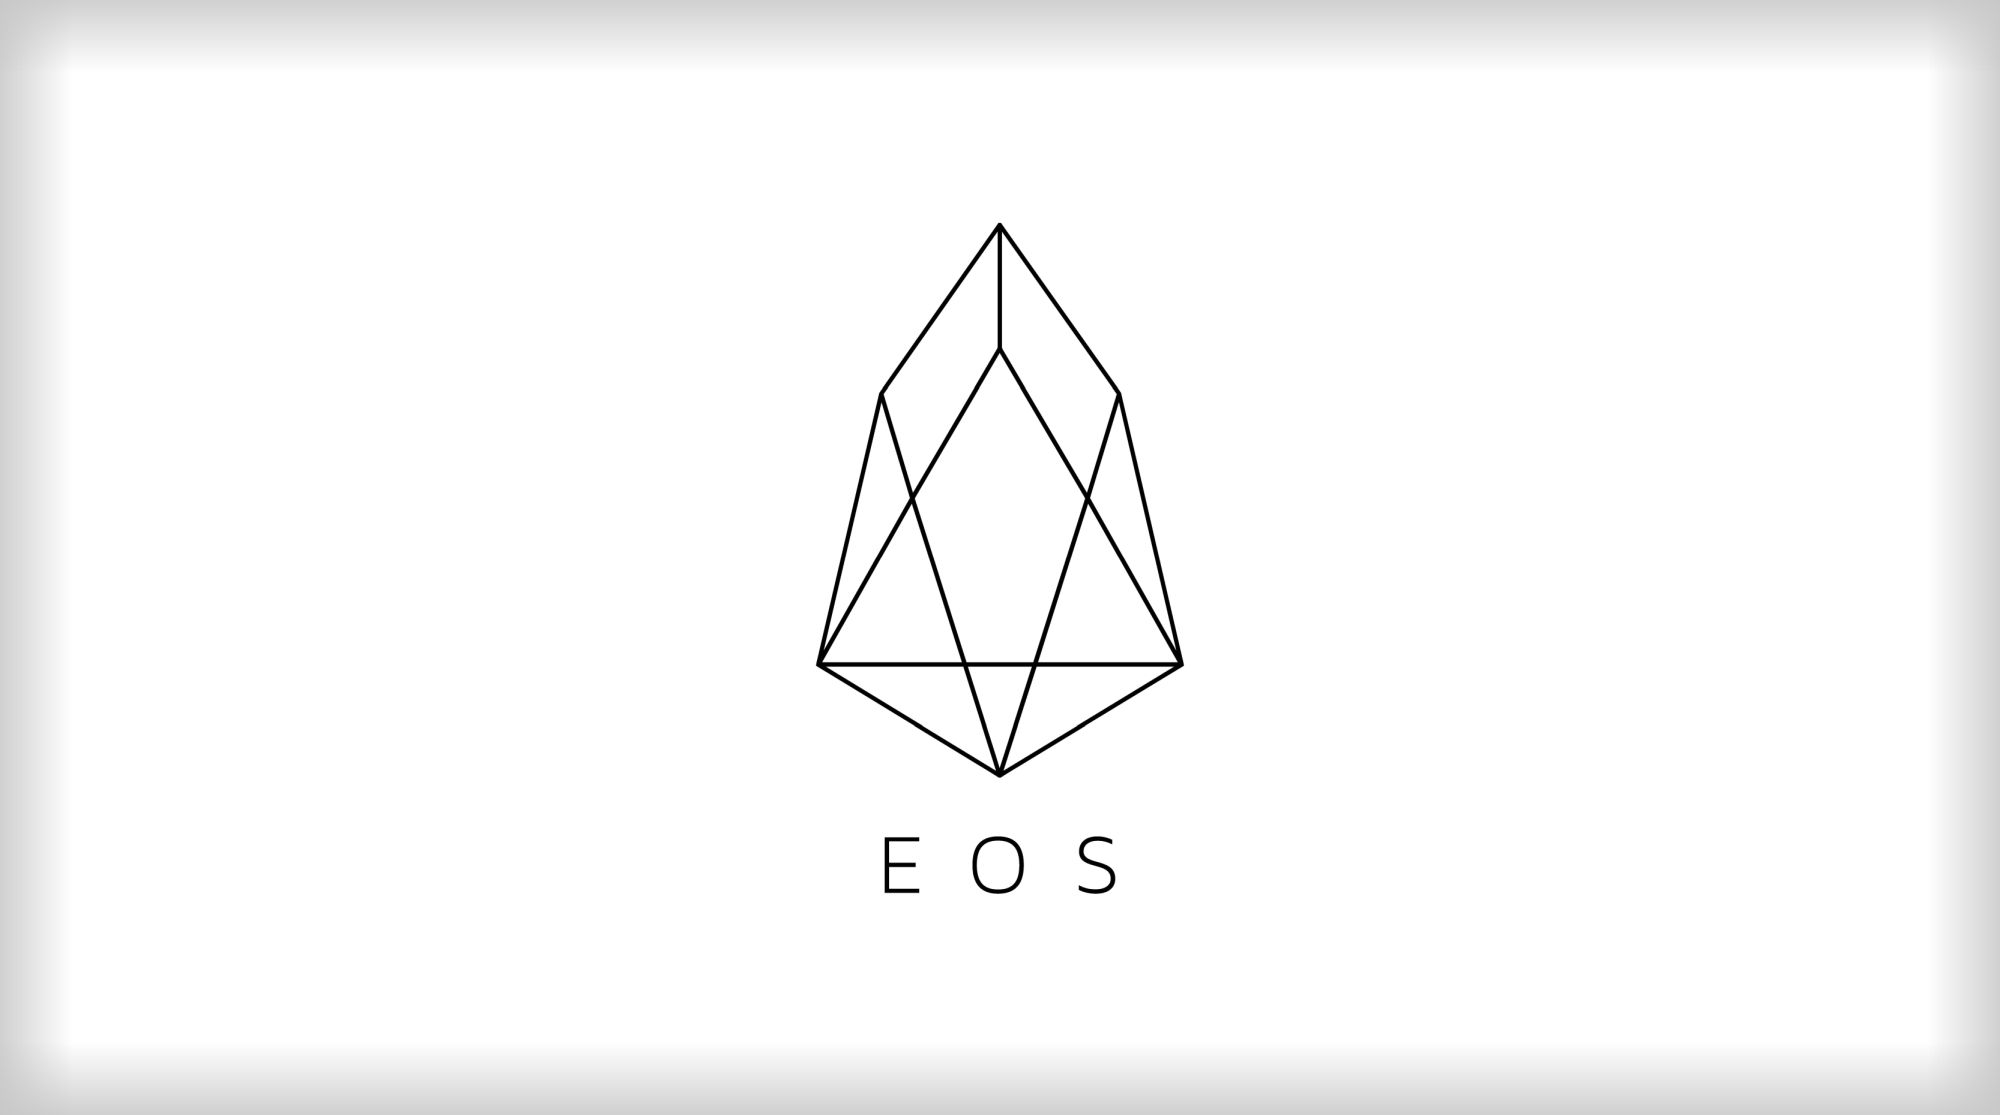 What Is EOSIO (EOS)? A Crypto Coin Study (via our sister